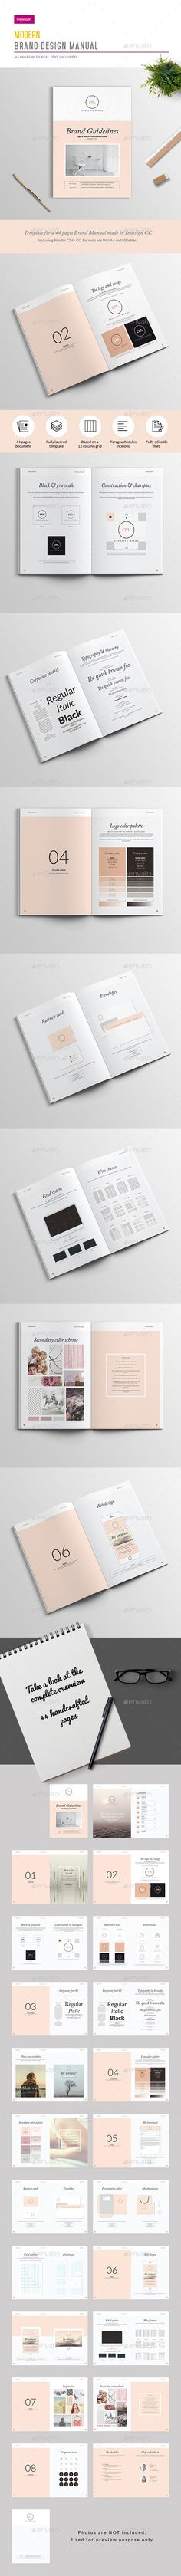 44 Pages Brand Manual Template InDesign INDD. Download here: http://graphicriver.net/item/brand-manual-44-pages/16648234?ref=ksioks